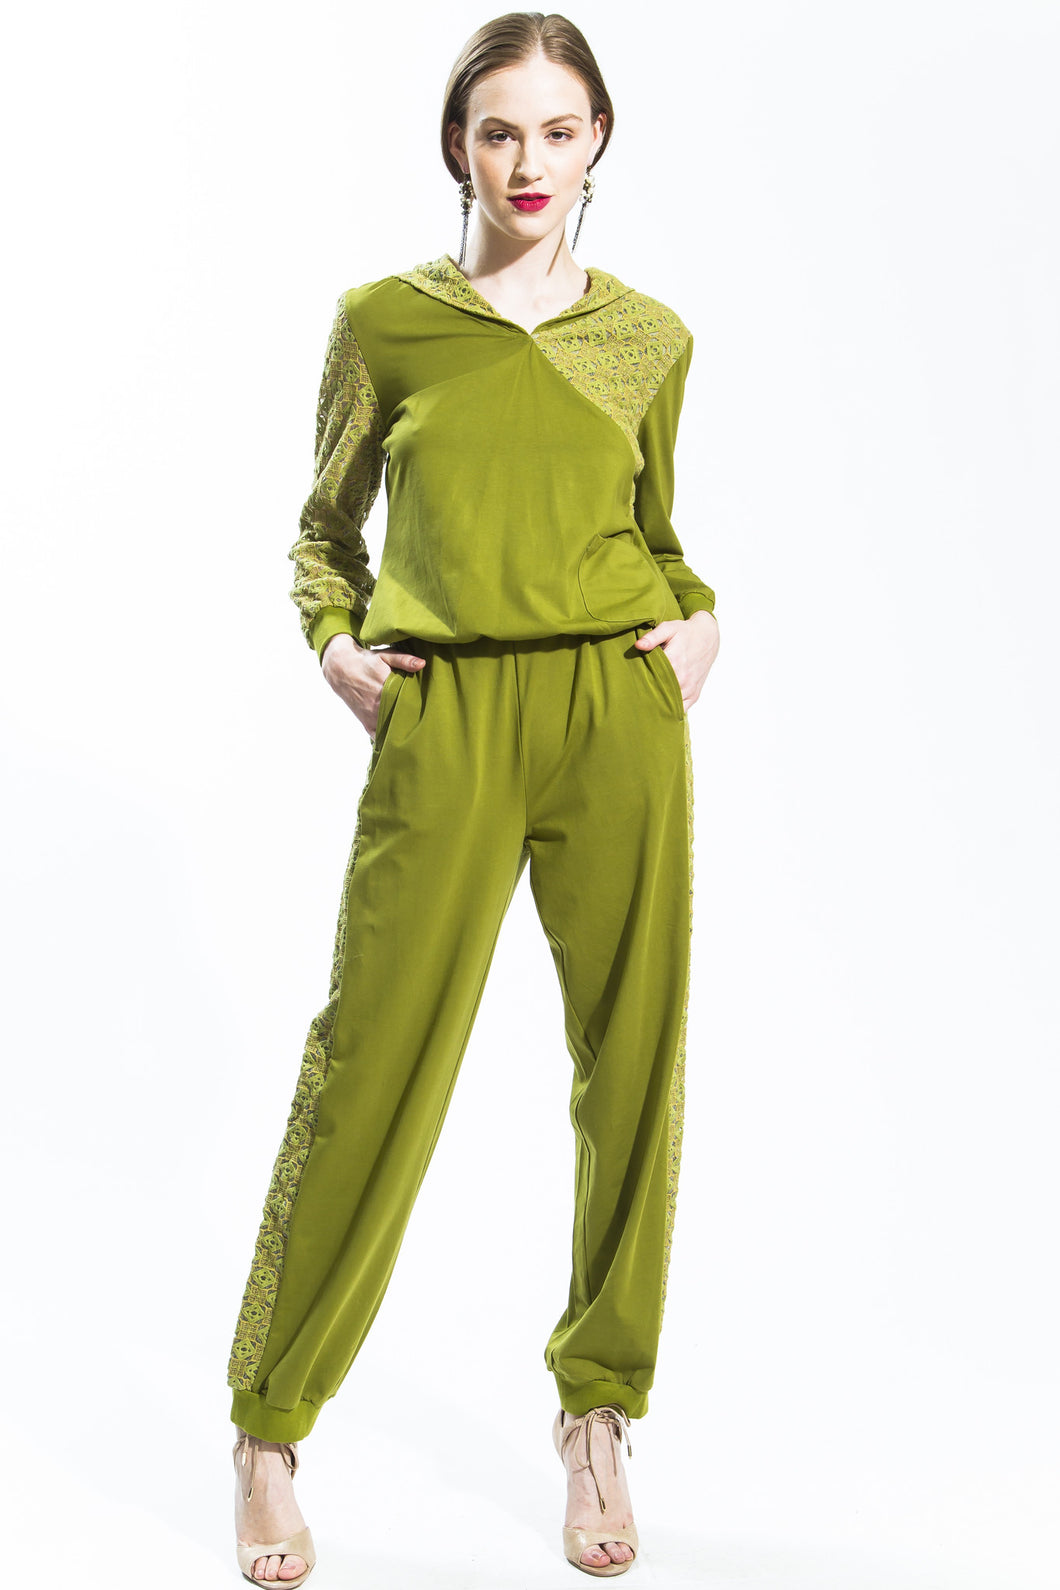 Hooded Lace Tracksuit (Green/Gold) Style # 1239P